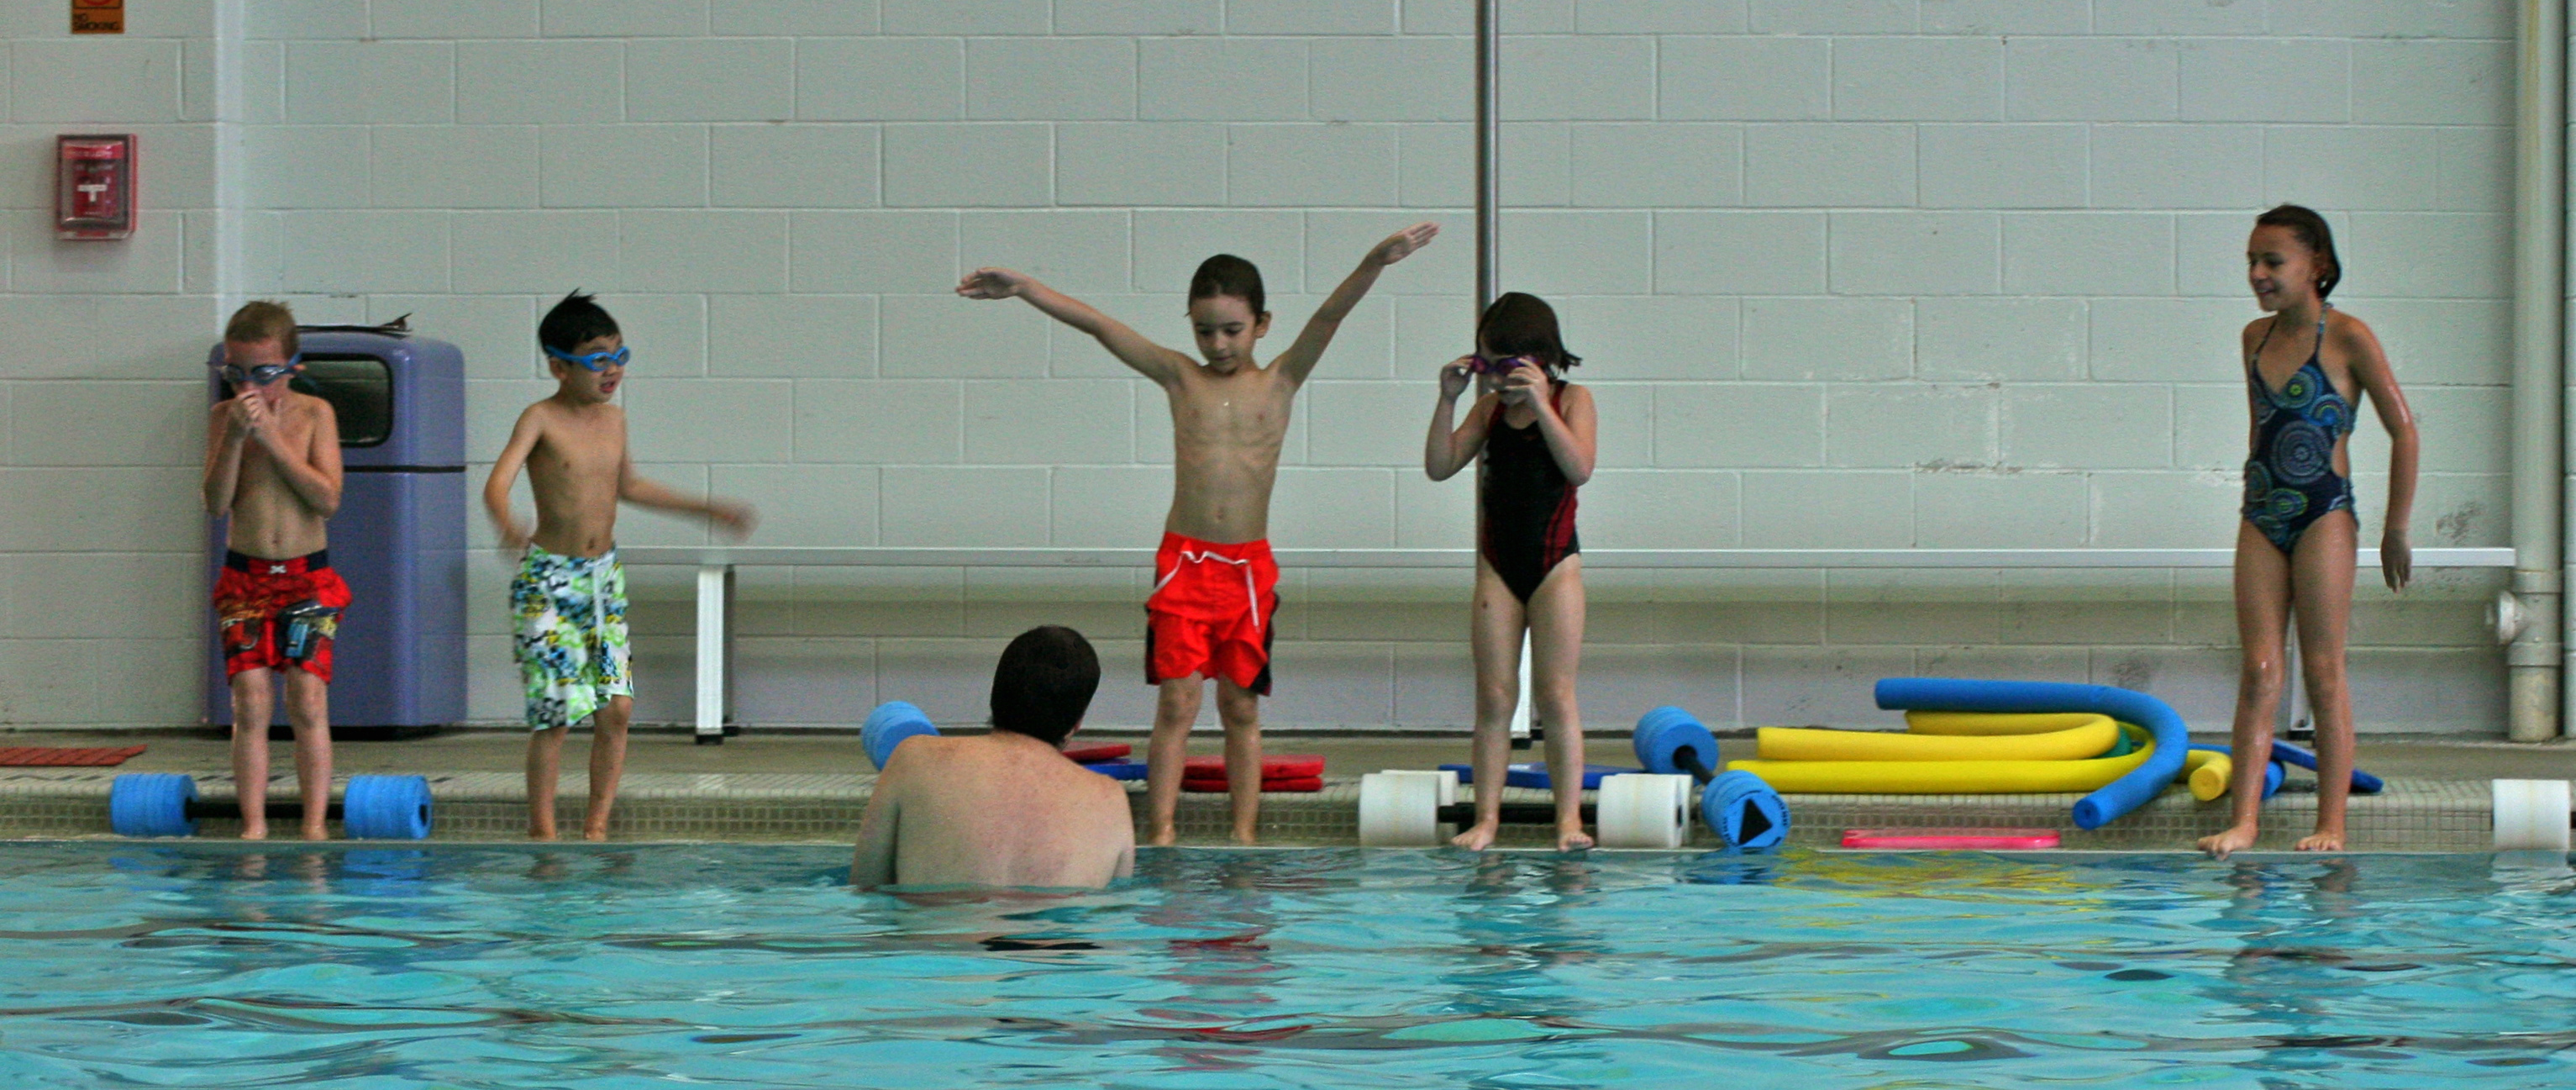 Safe and fun learn-to-swim